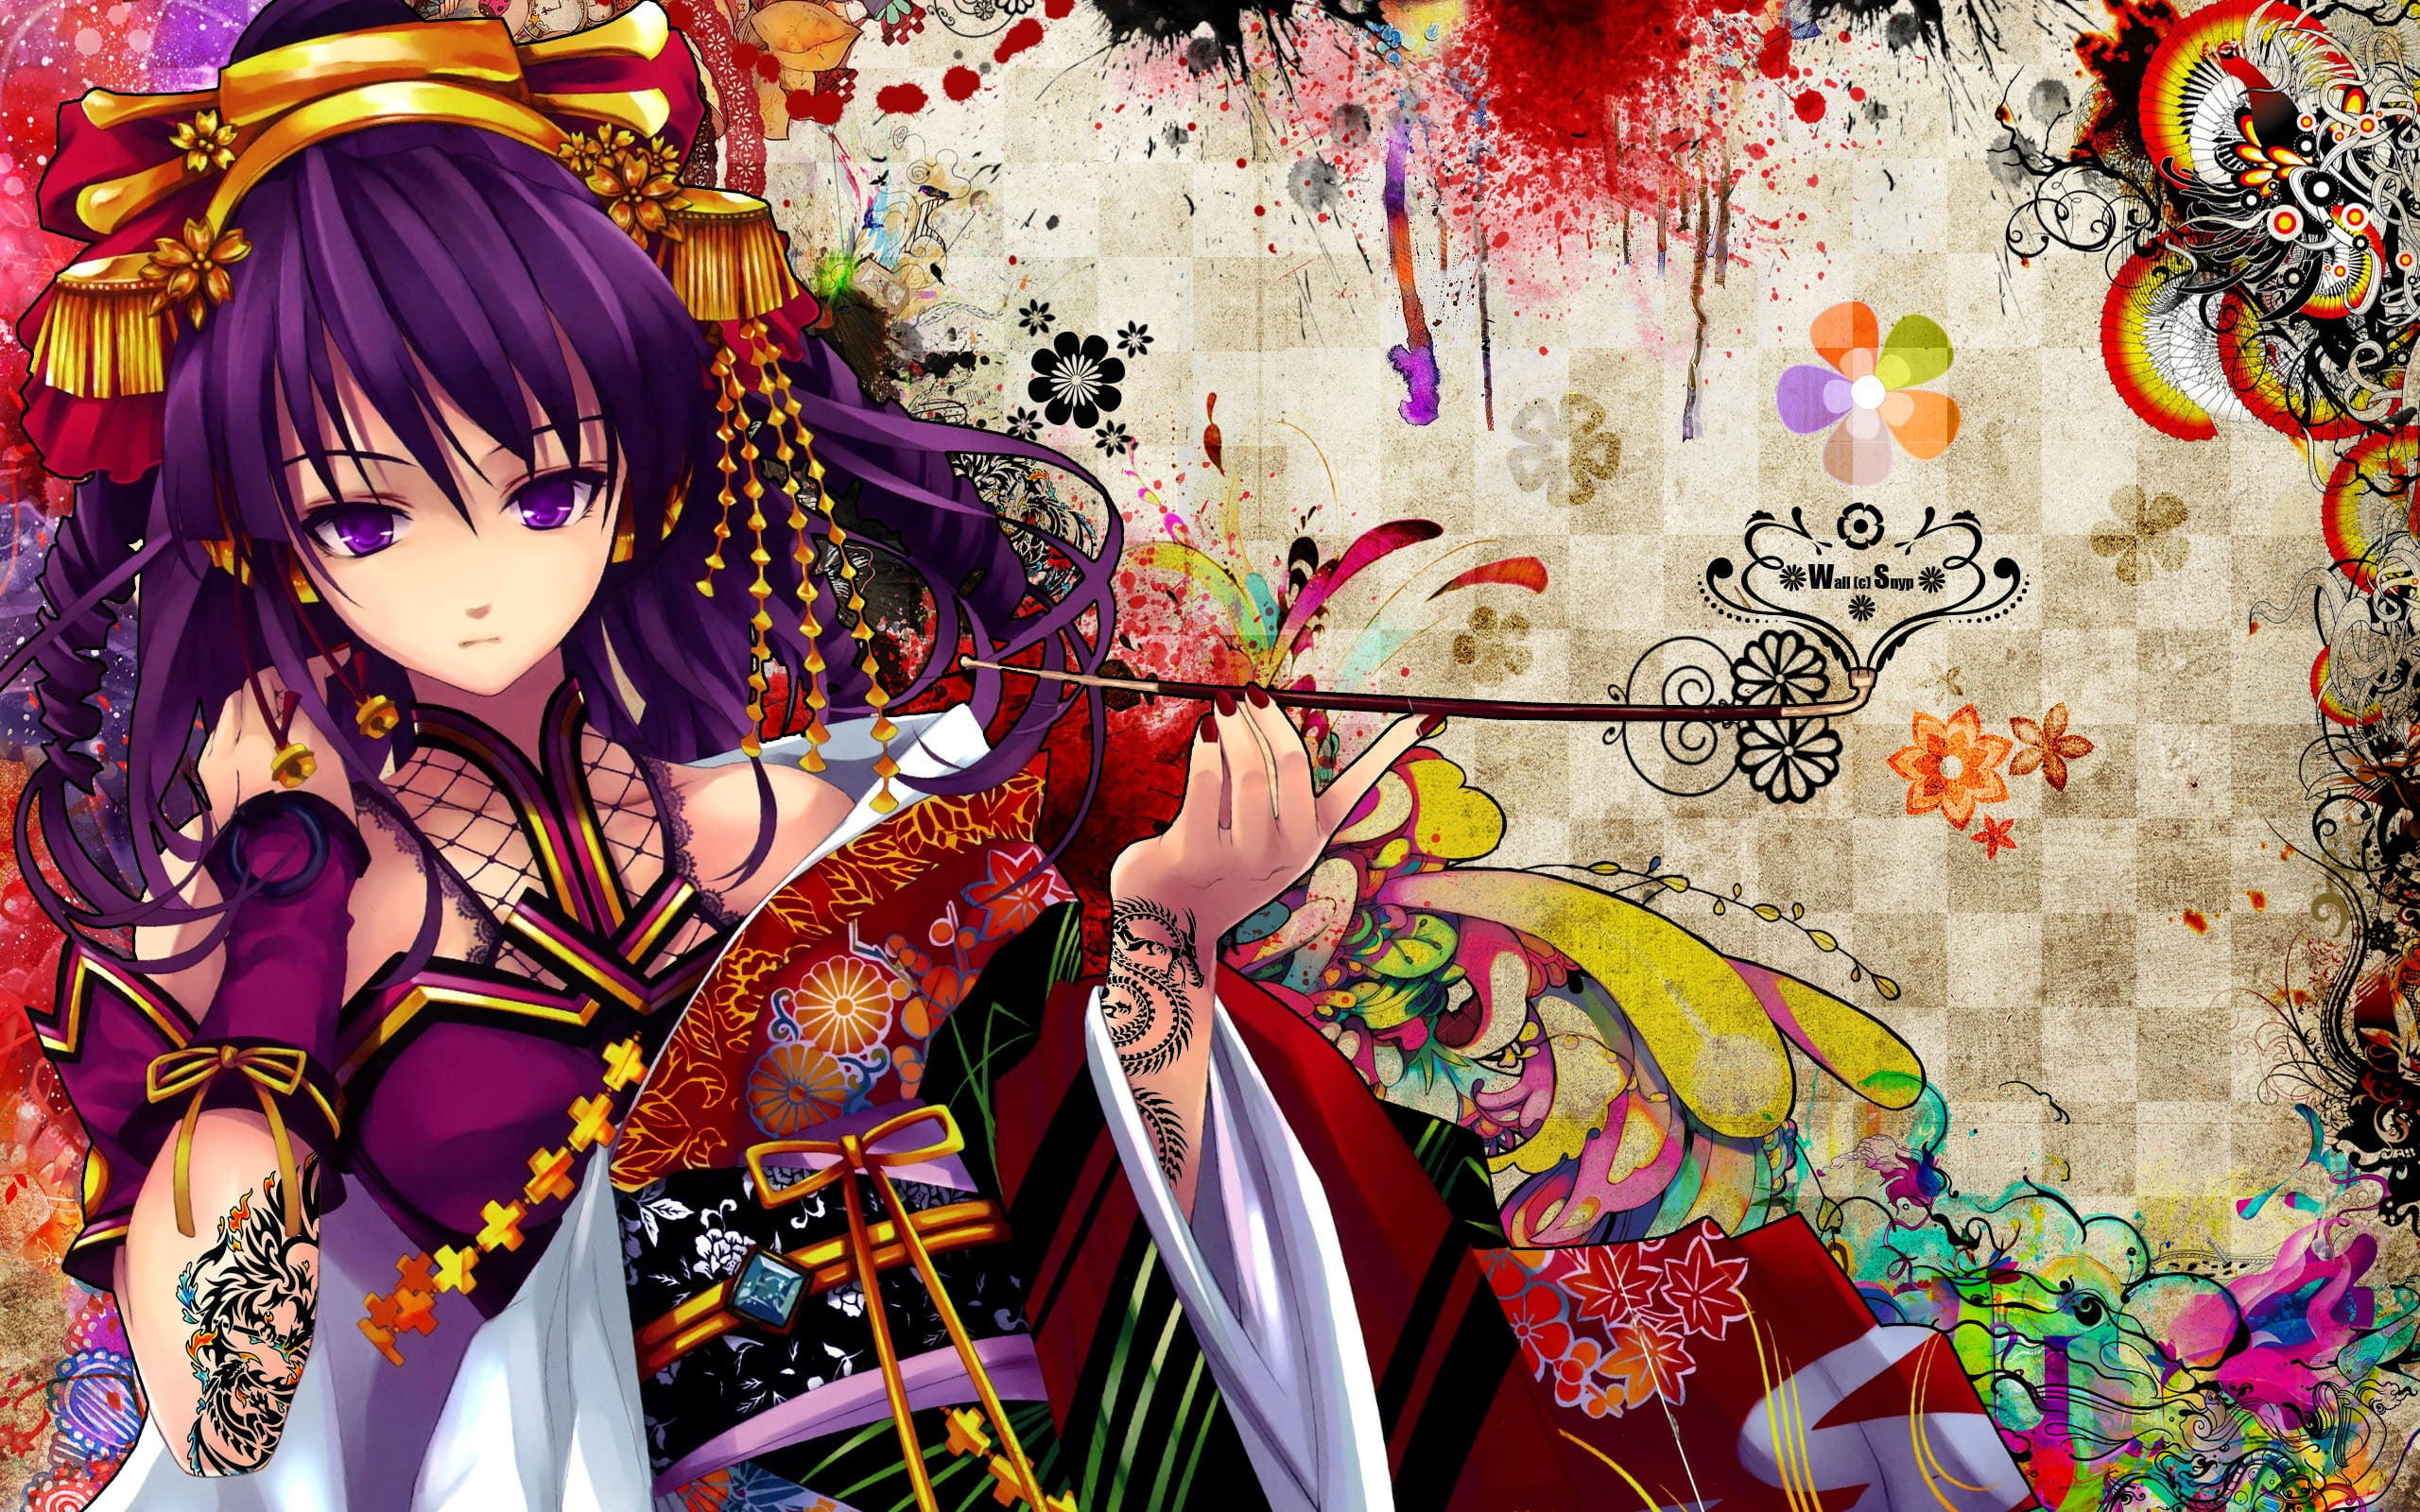 Female animation character holding smoking pipe digital wallpaper 2560x1600